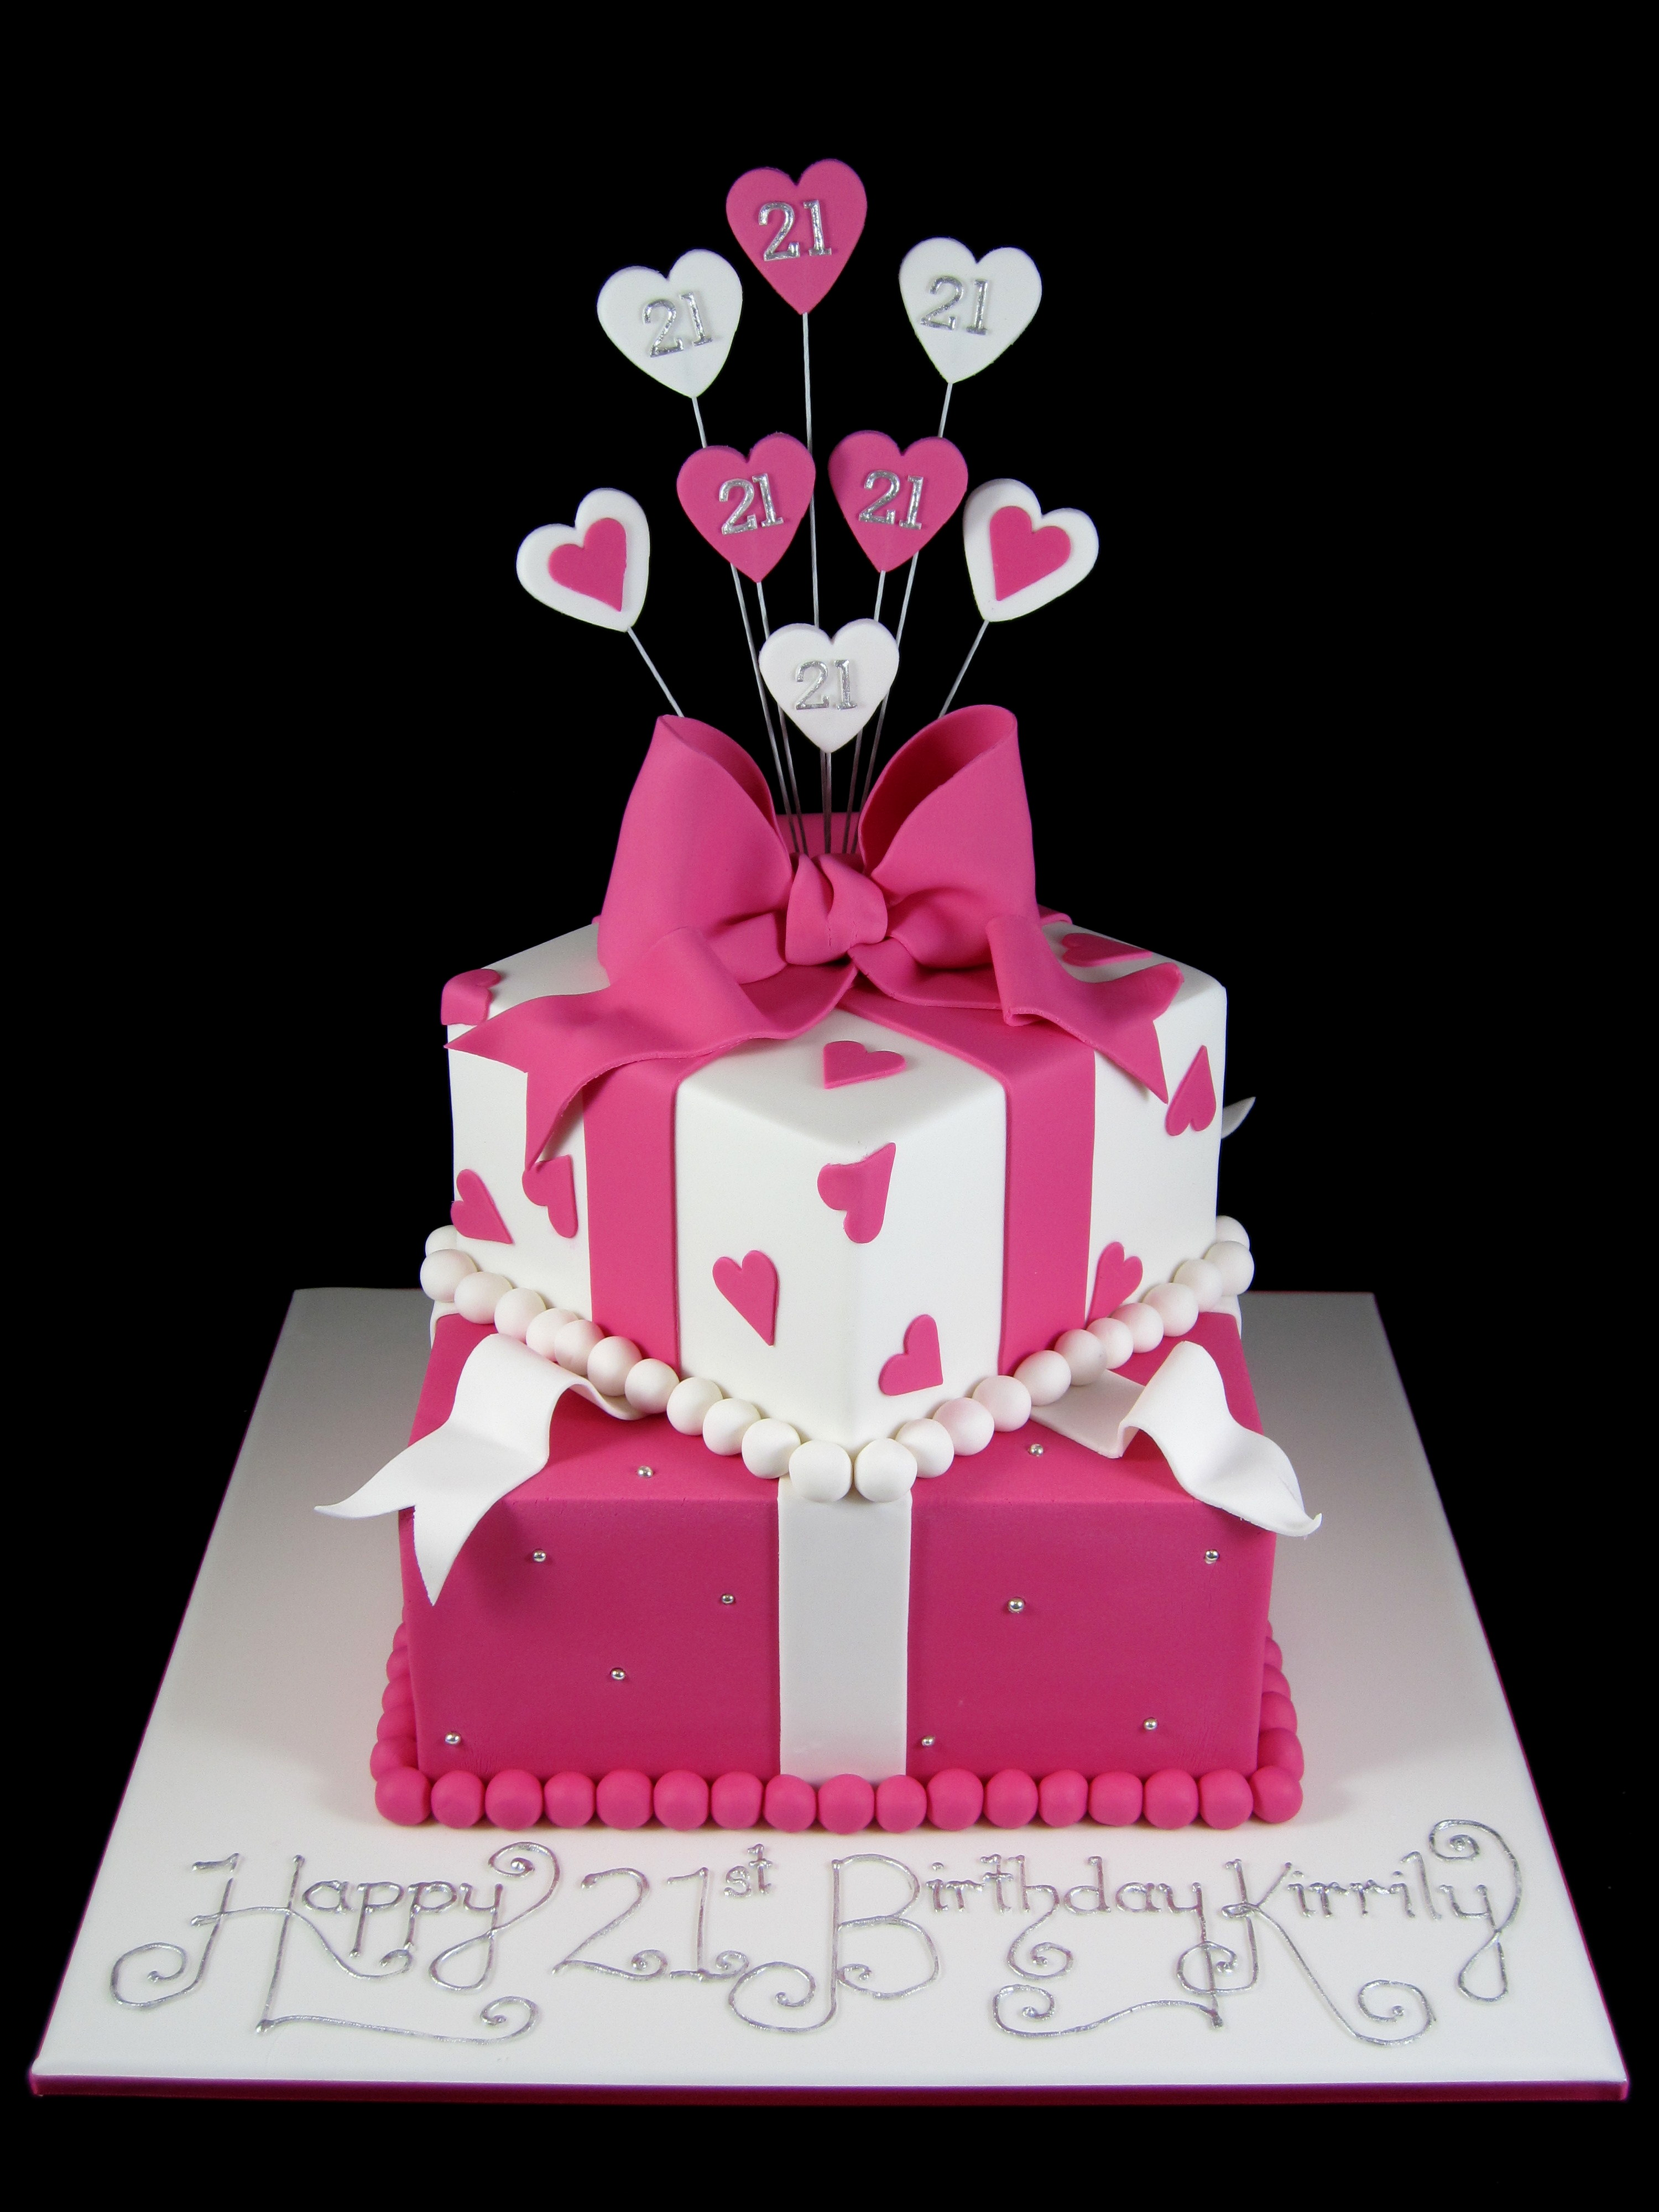 Perfect 21st Birthday Cake Designs Food And Drink